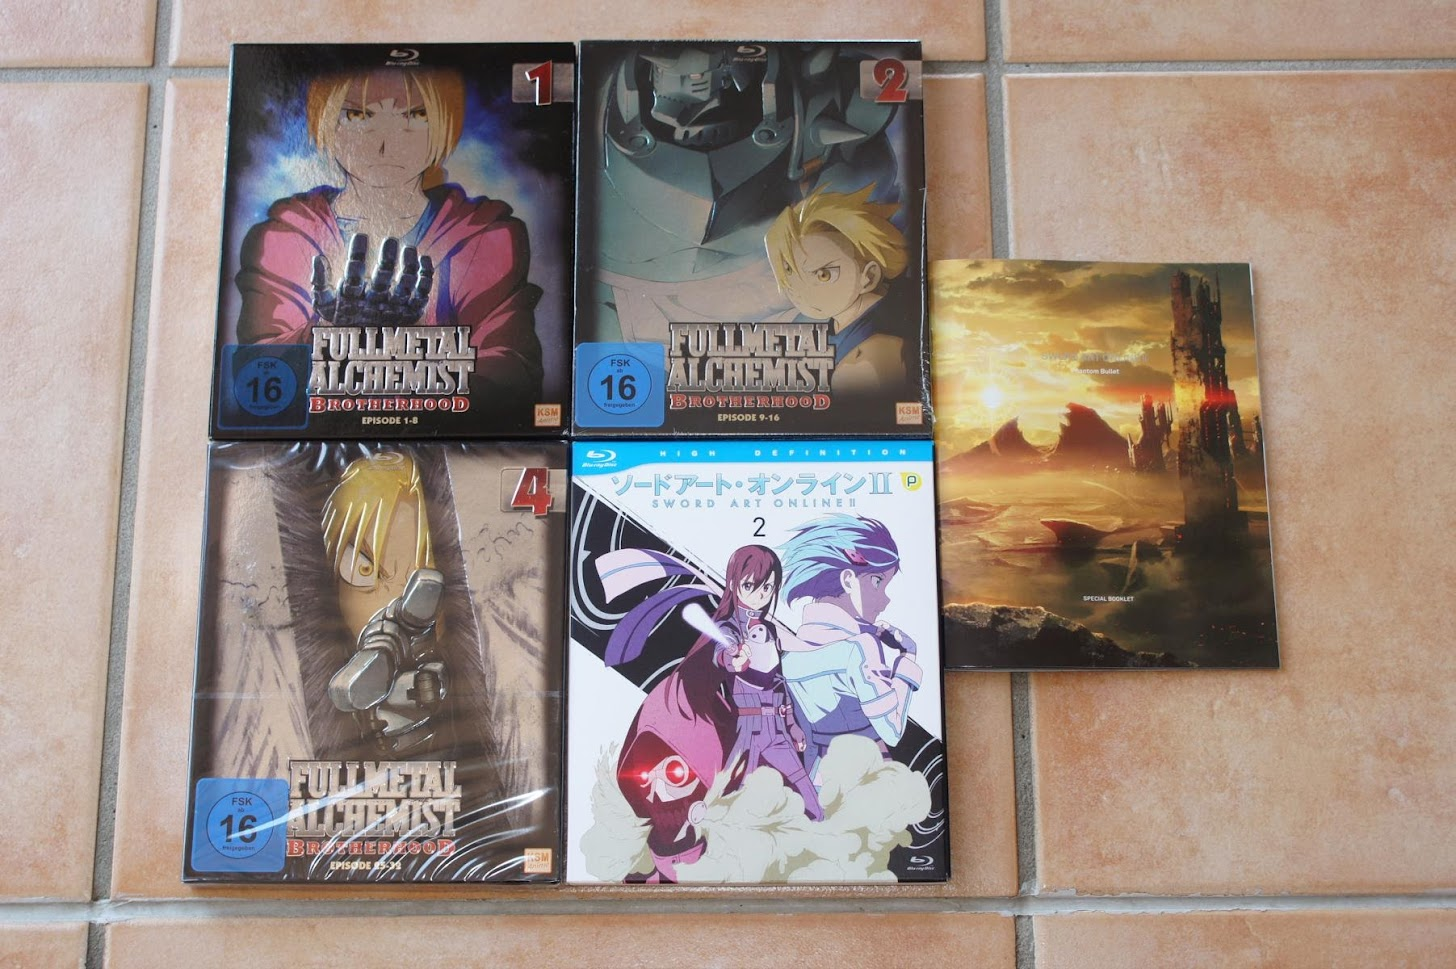 Anime Blu-ray Fullmetal Alchemist Brotherhood Sword Art Online 2